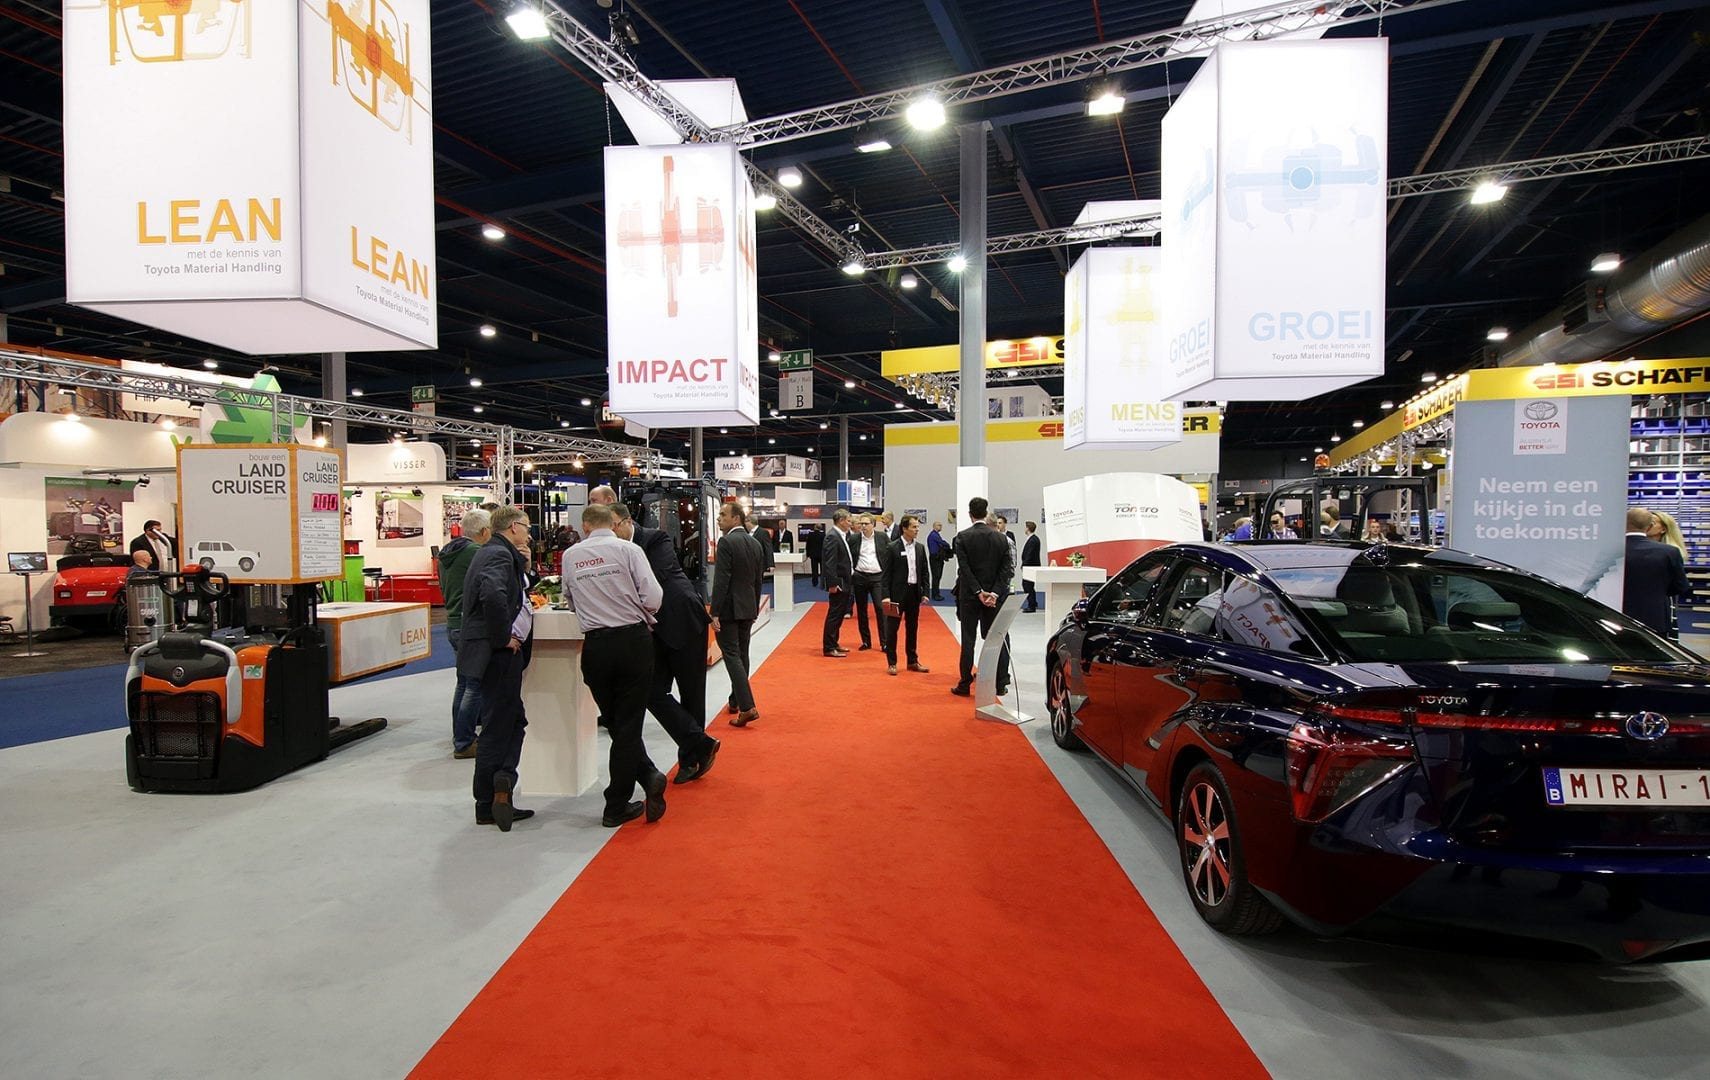 dst_toyota-beurs-experience_06